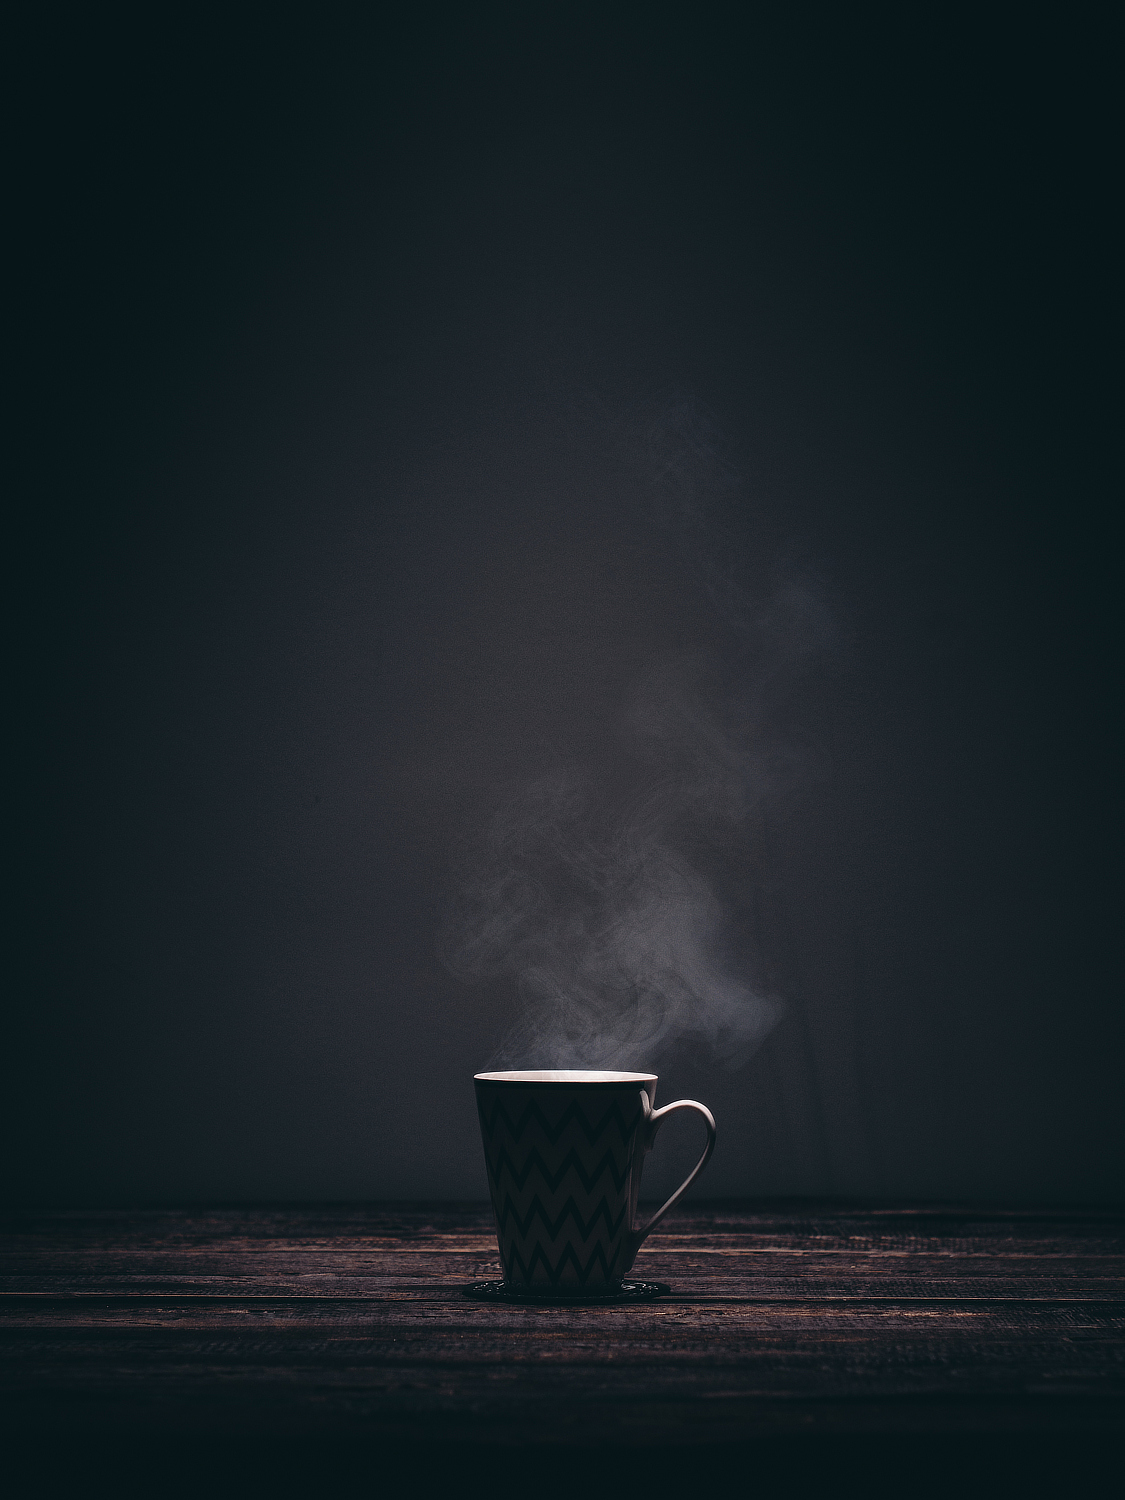 Making a cup of tea is one of my rituals around my morning writing time. (Photo: Pexels)